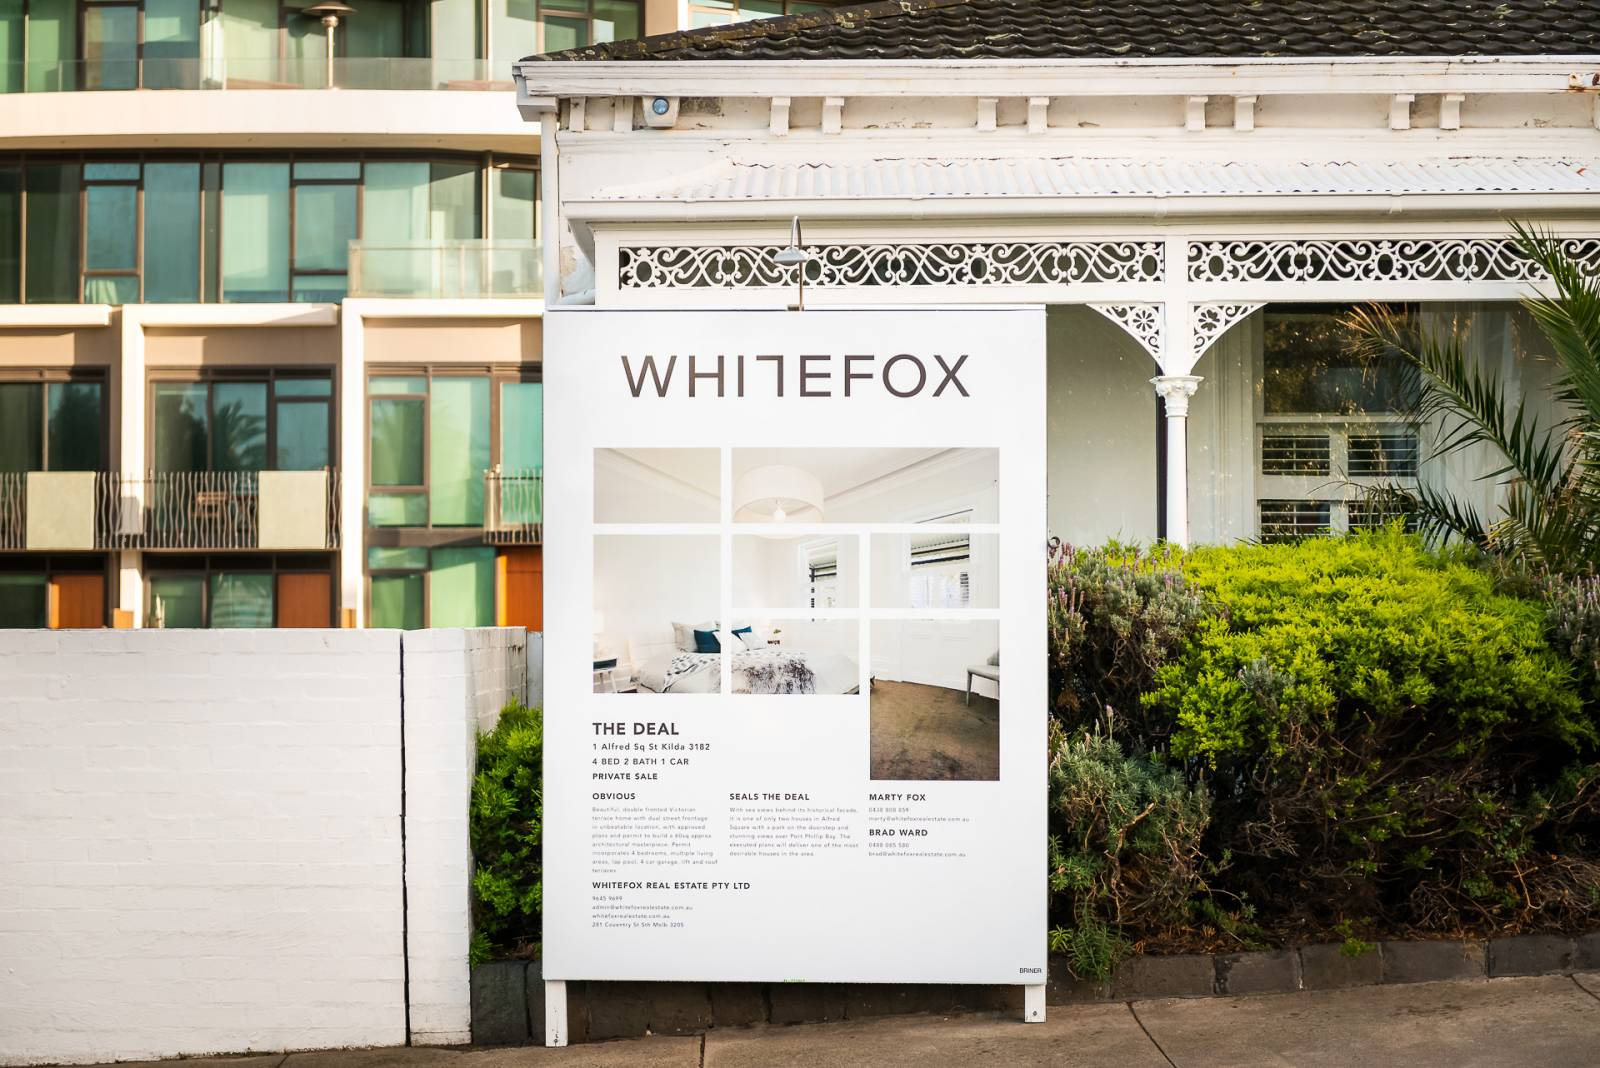 Whitefox Wrap Around Board